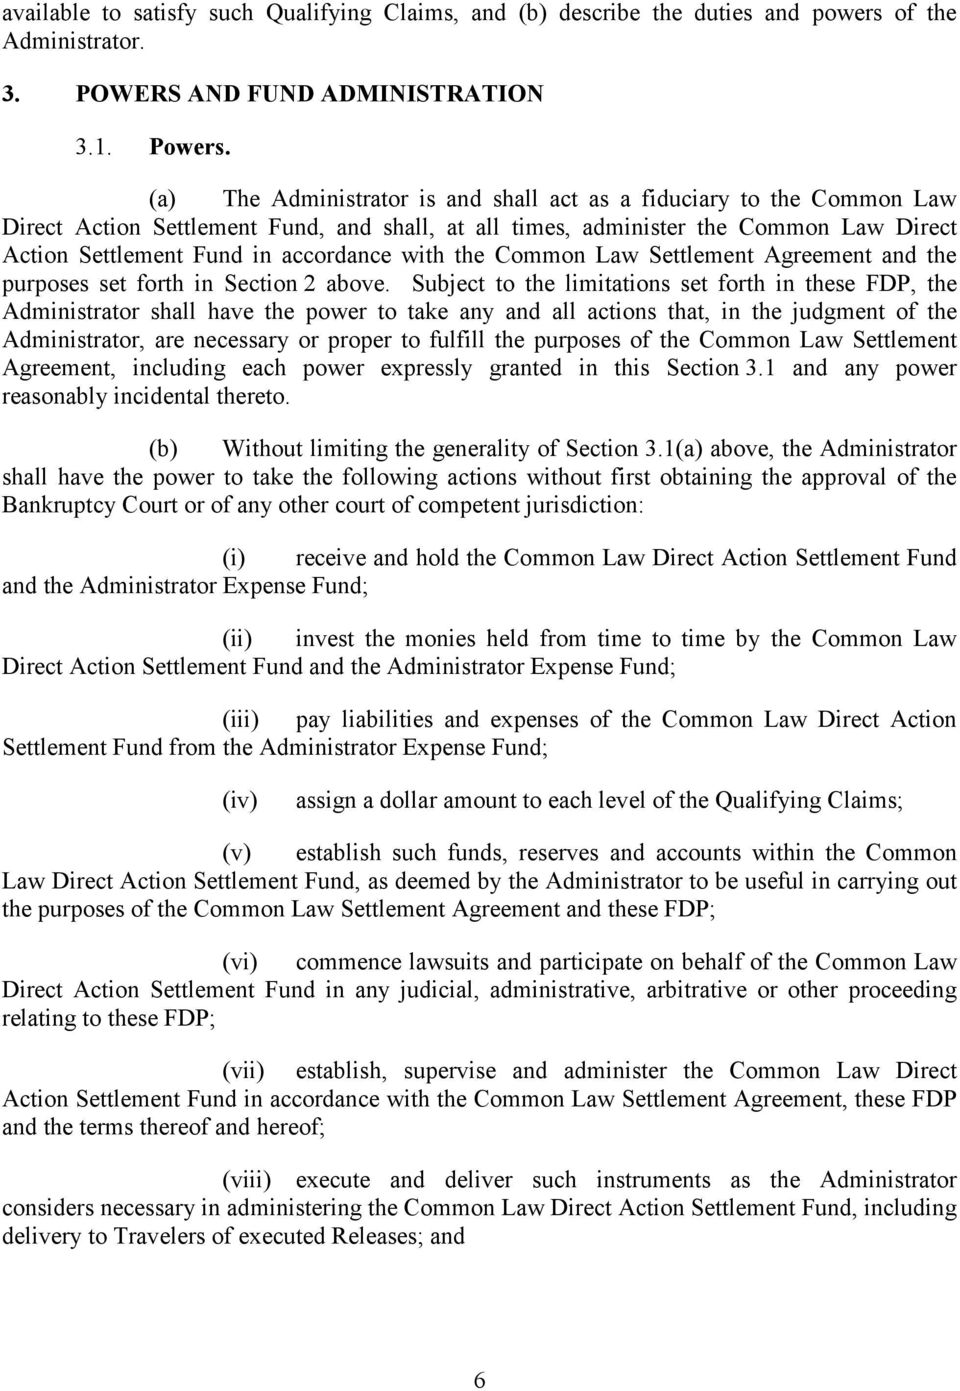 with the Common Law Settlement Agreement and the purposes set forth in Section 2 above.